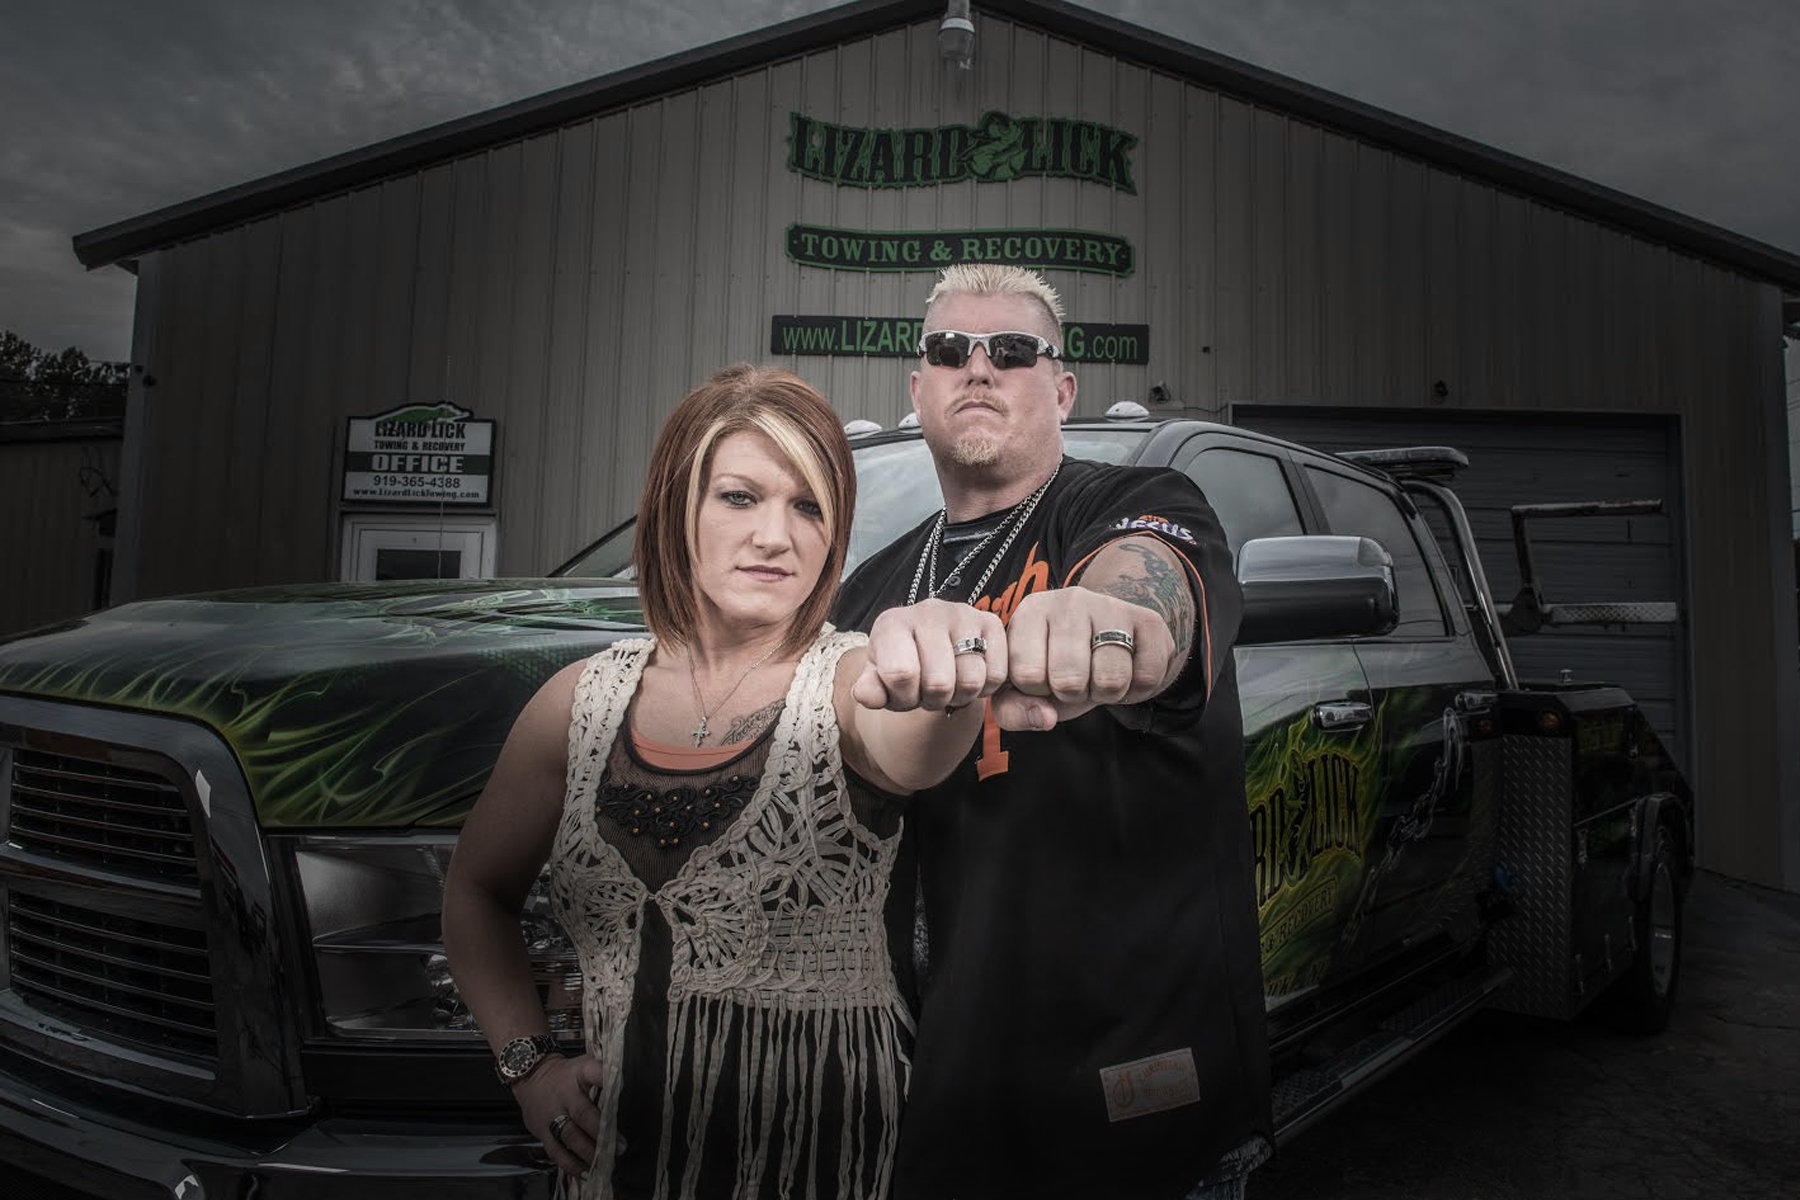 Amy Shirley and her husband, Ron Shirley is standing next to each other. They are putting up their left fist and showing their wedding ring. The pair are standing right in front of the Lizard Lick Towing's building.